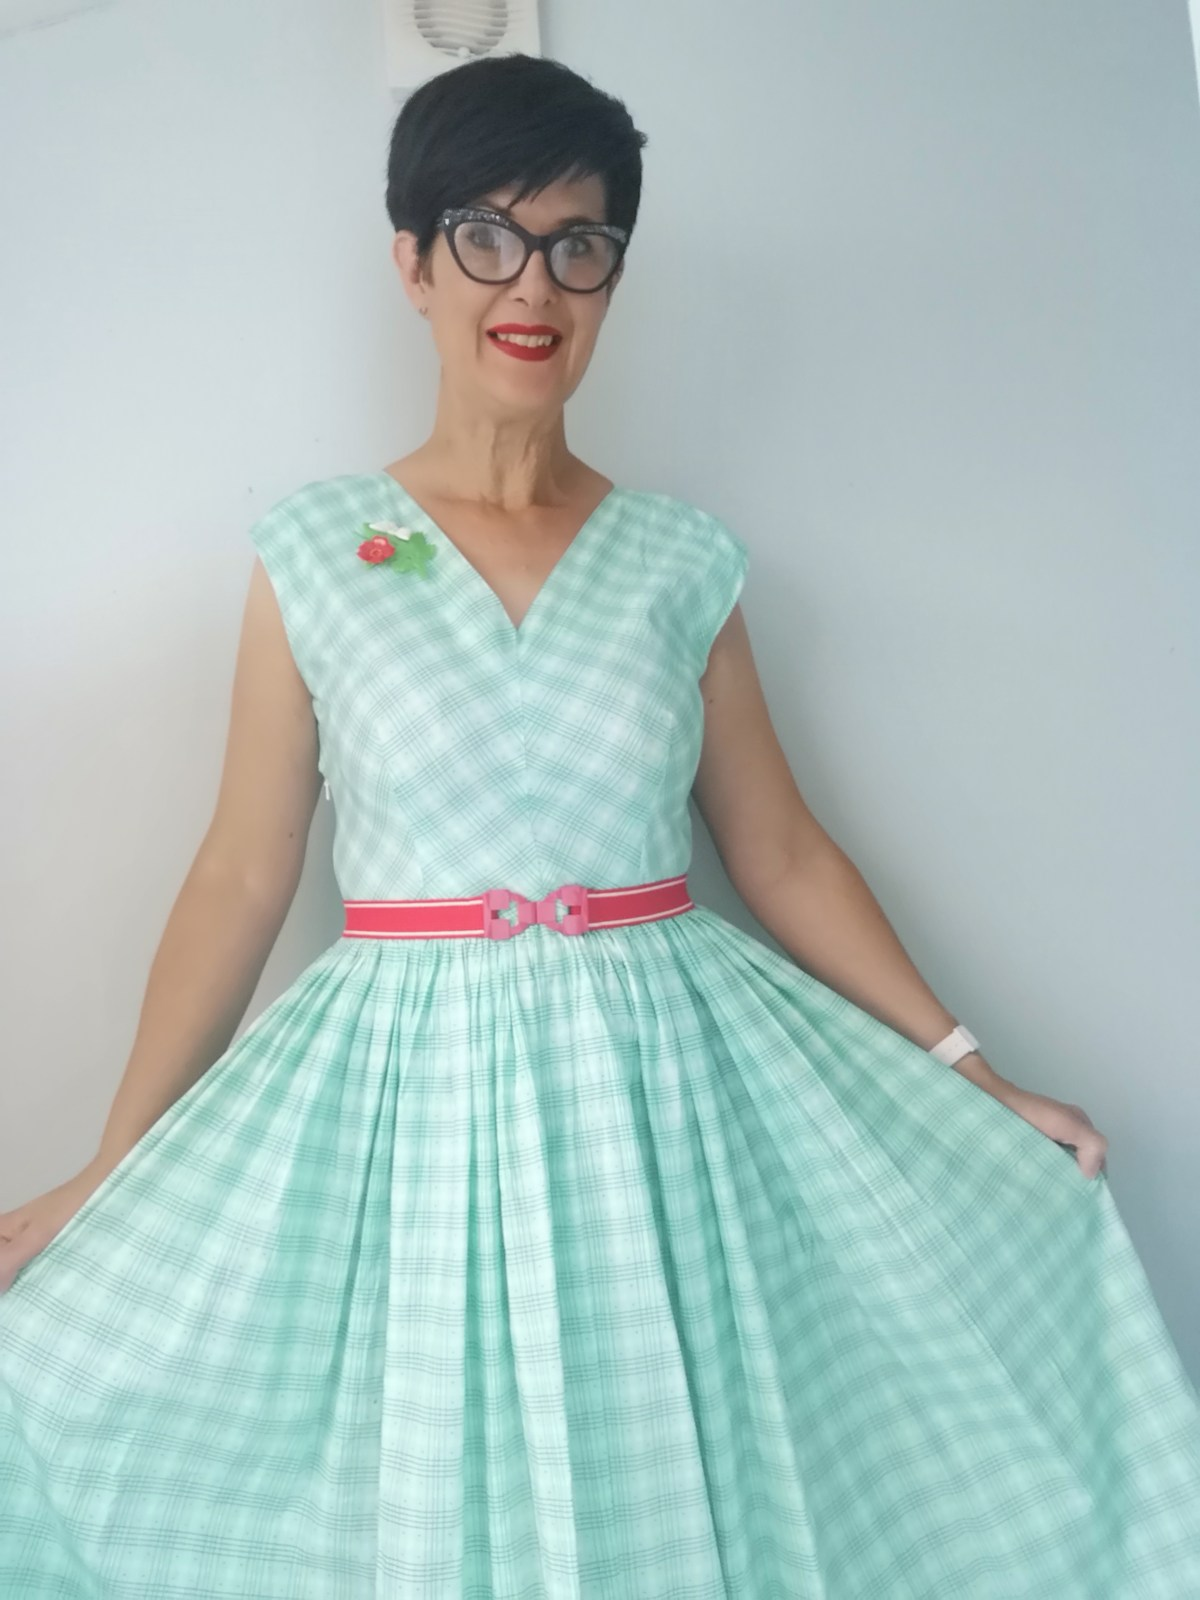 A white woman with short dark hair, 1960s-style glasses, and red lipstick holds the sides of the skirt on her dress. The dress is light blue and white gingham with a v neckline and has a pink belt.